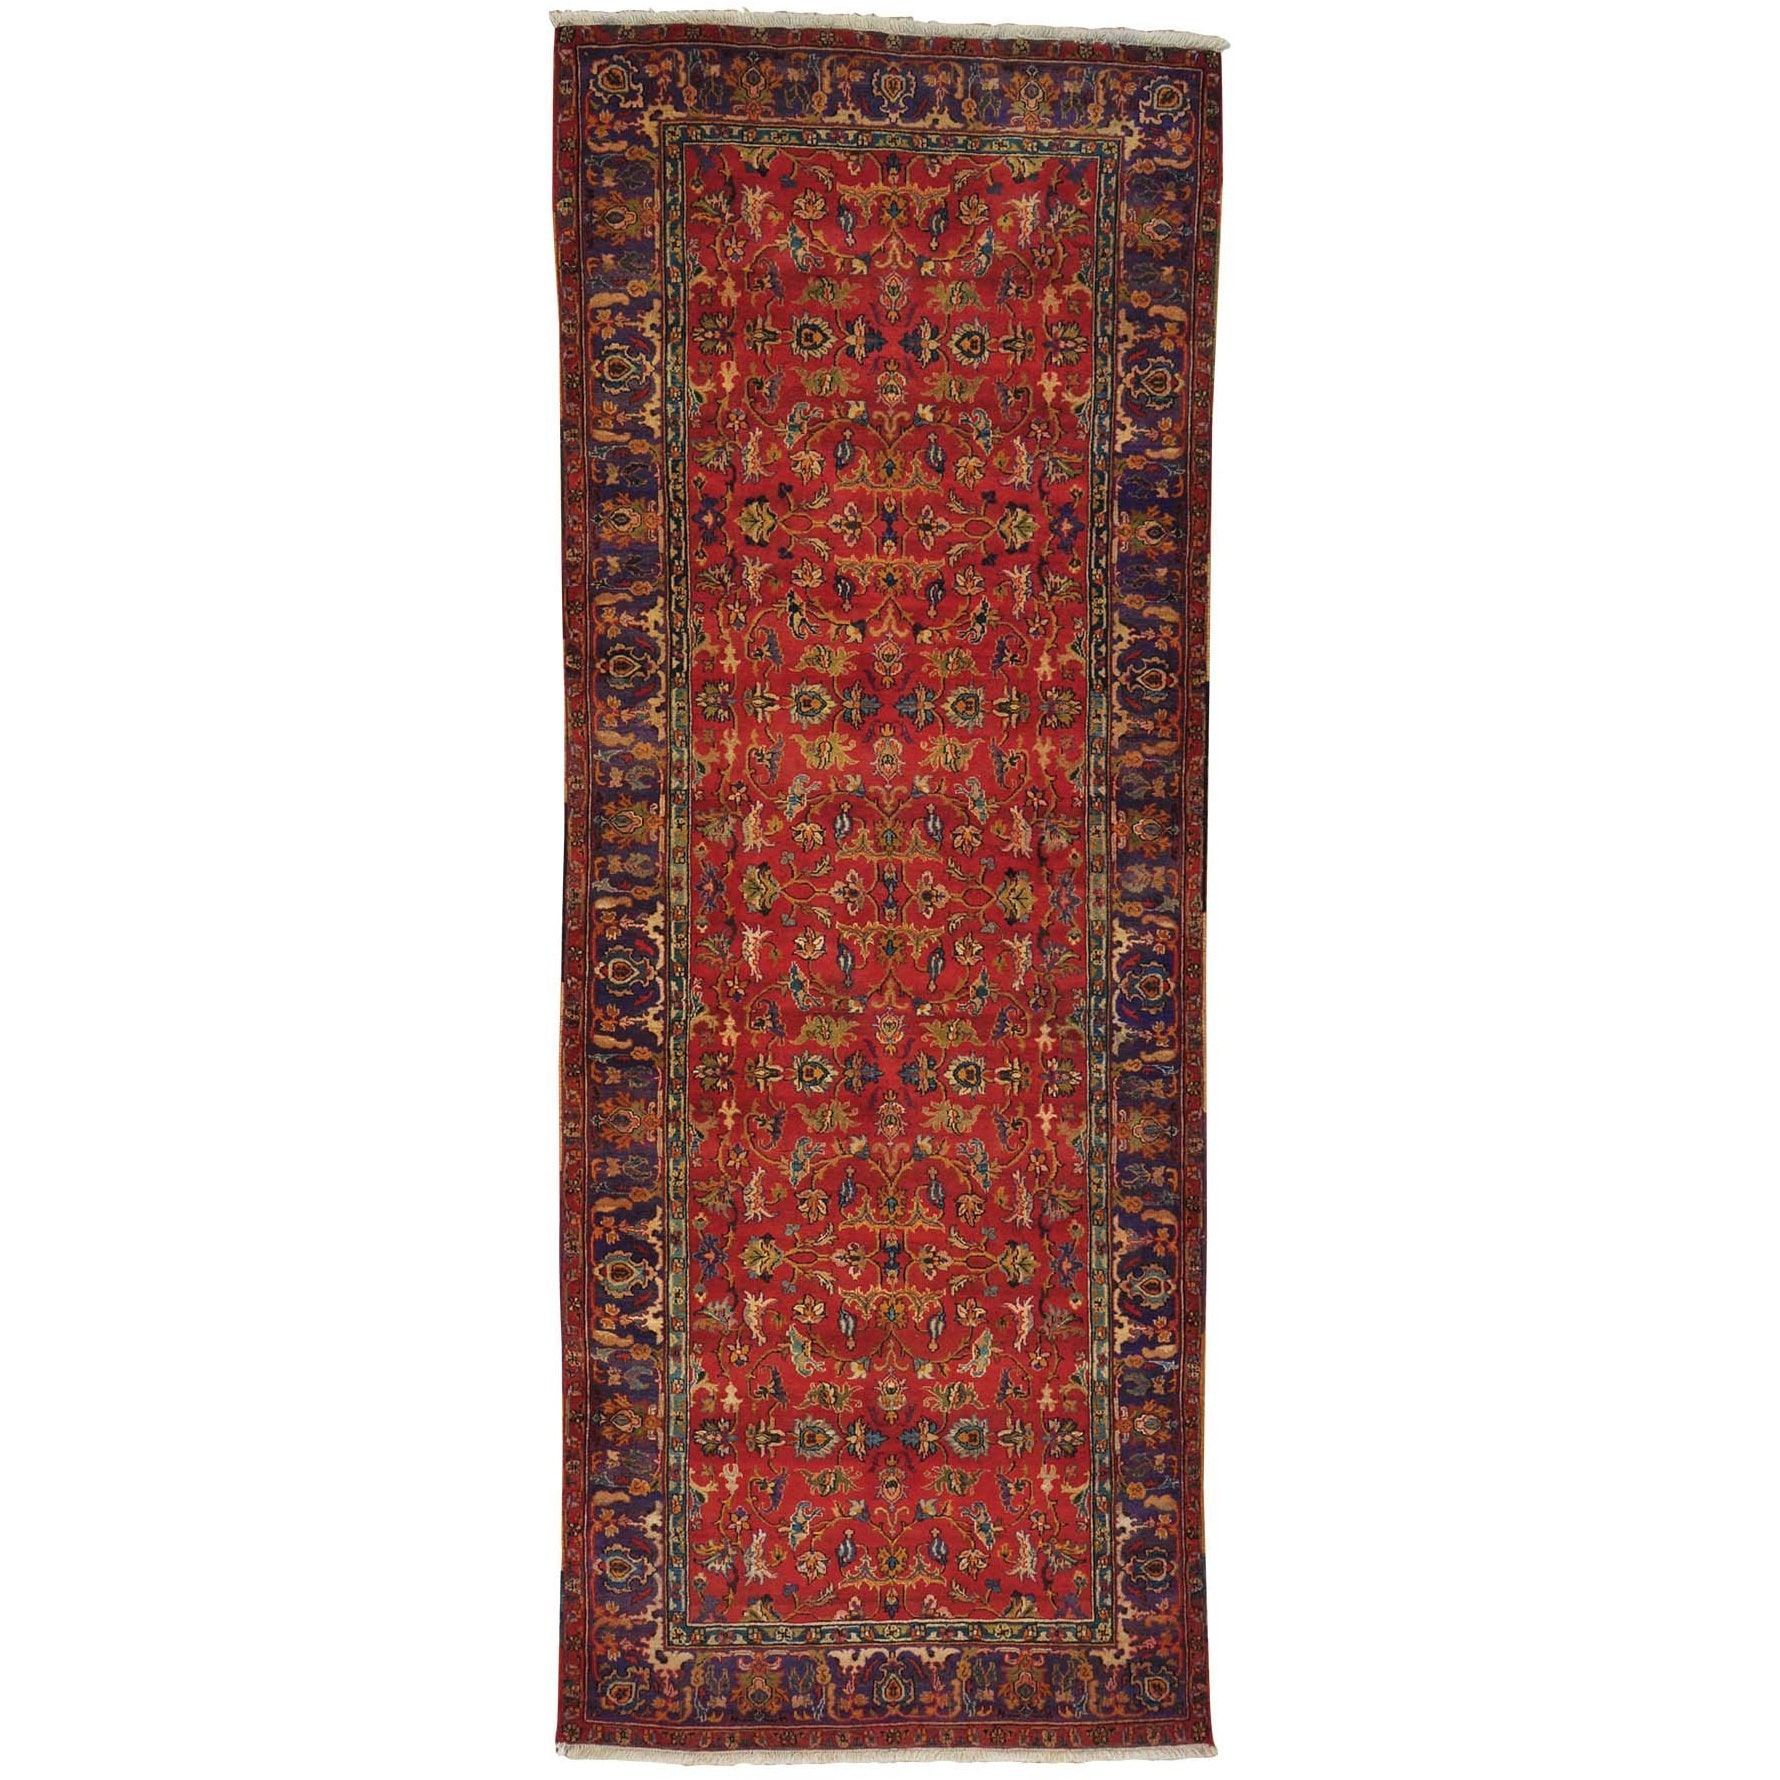 1800getarug Refurbished Handmade Wide Runner Golden Age Oriental Rug 4 2 X 10 7 Exact Size Red